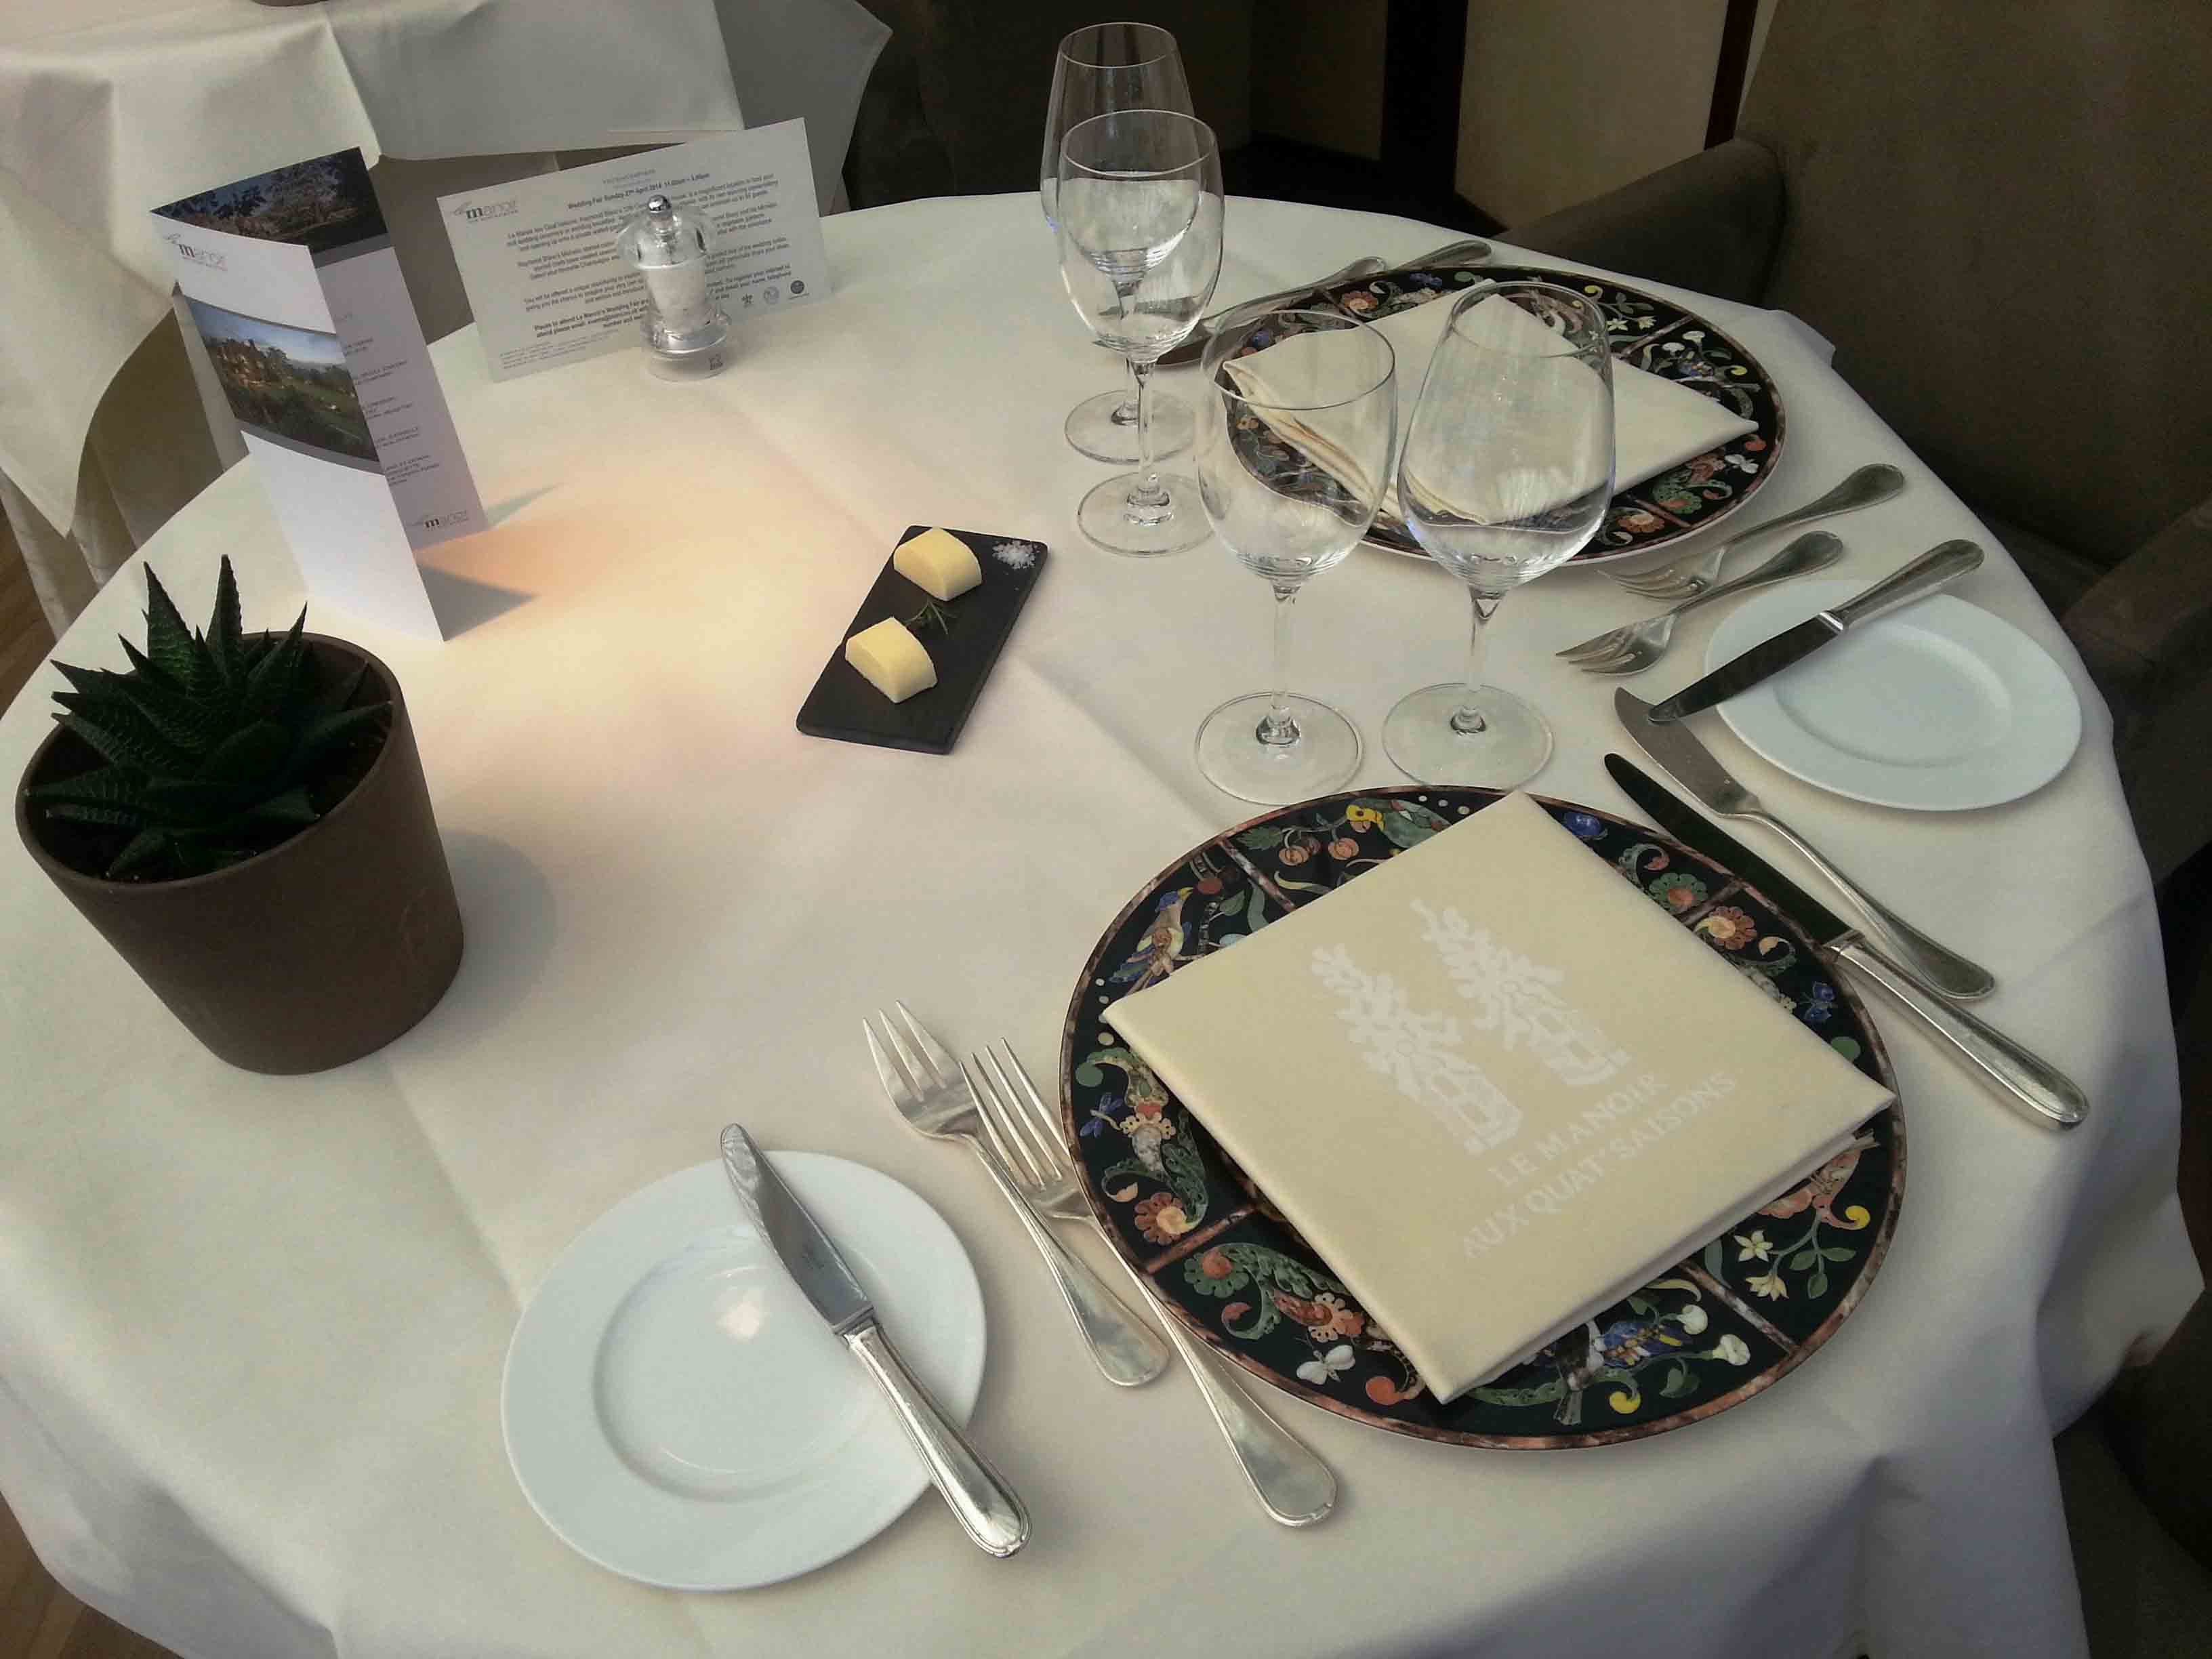 Restaurant table setting for two - An